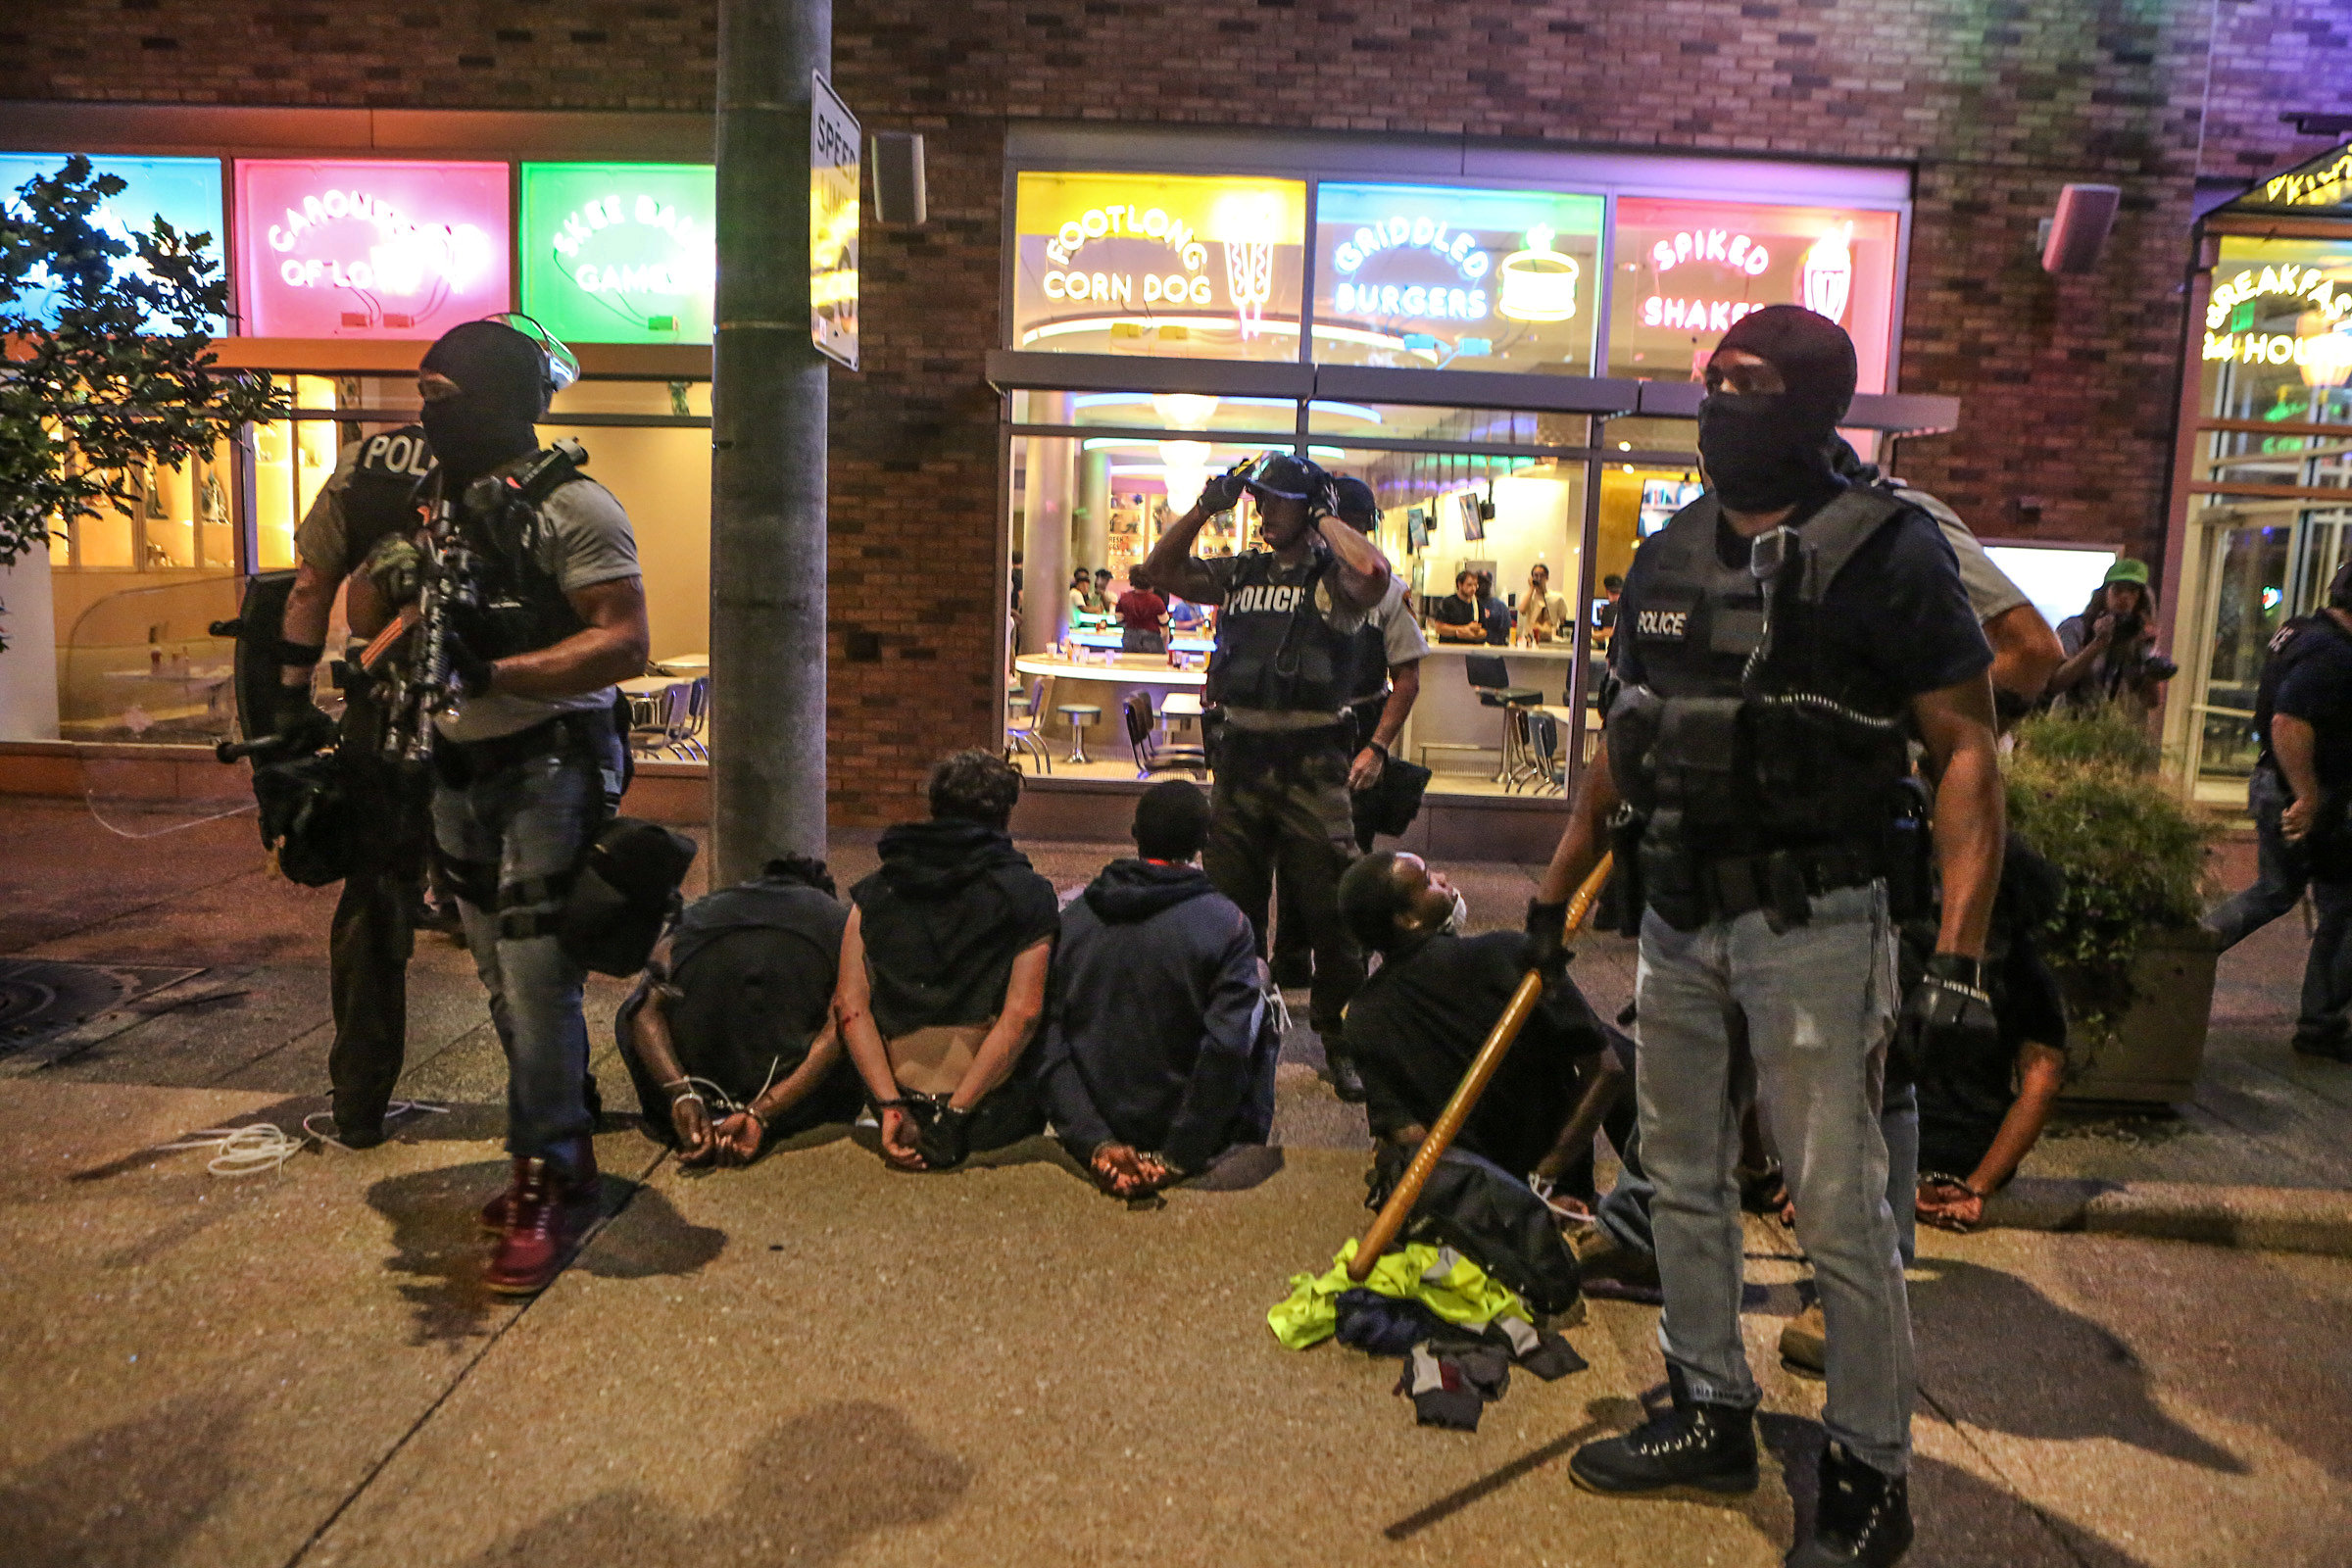 Police detain protesters arrested for causing damage to local businesses during the second night of demonstrations after a not guilty verdict in the murder trial of former St. Louis police officer Jason Stockley, charged with the 2011 shooting of Anthony Lamar Smith, who was black, in St. Louis, Missouri on Sept. 16, 2017. (REUTERS/Lawrence Bryant)